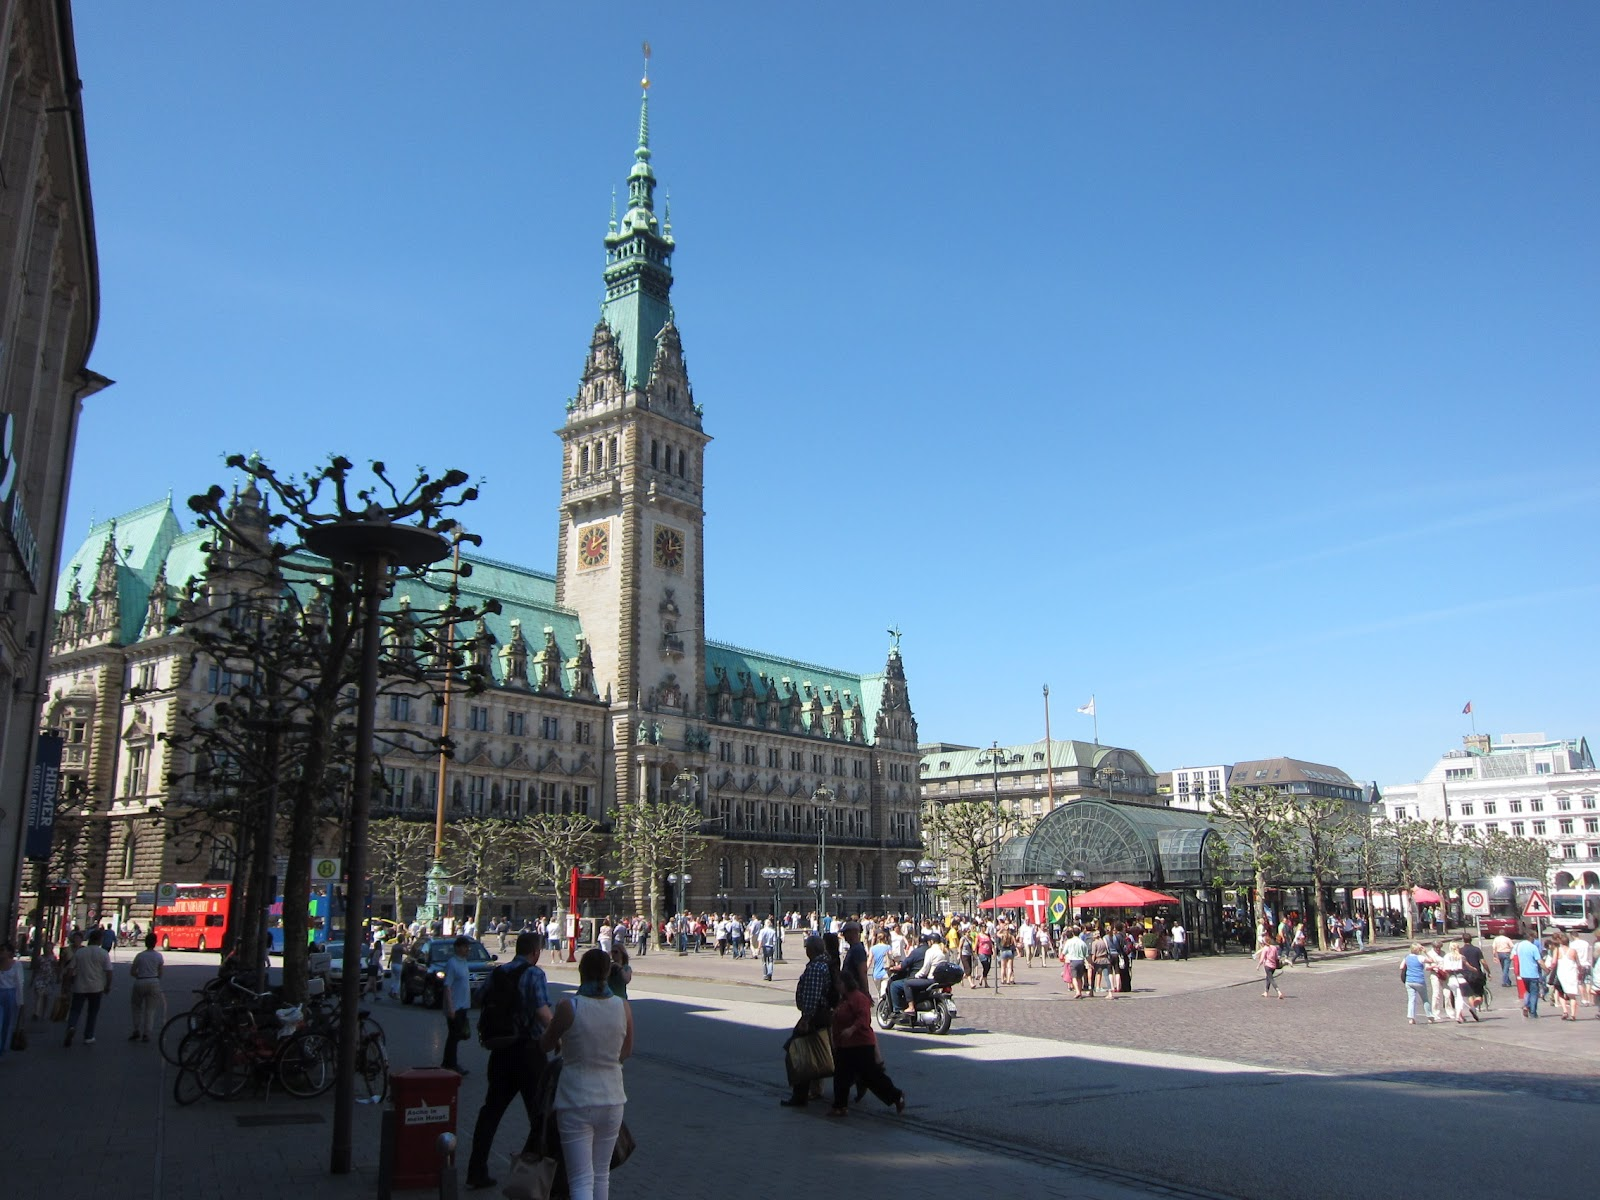 hamburg germany Compare 310 hotels in hamburg using 54395 real guest reviews earn free nights and get our price guarantee - booking has never been easier on hotelscom.